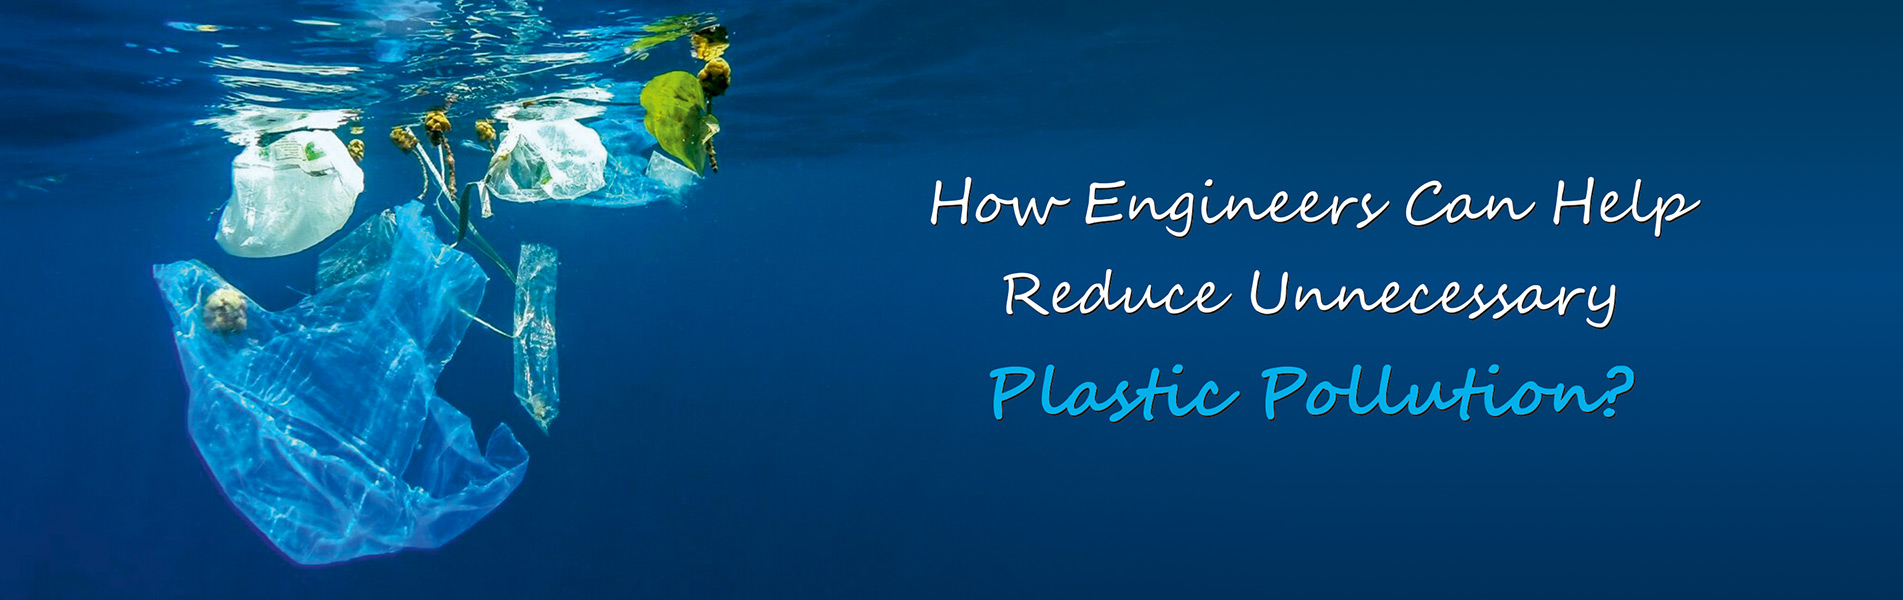 How-engineers-can-help-reduce-unnecessary-plastic-pollution